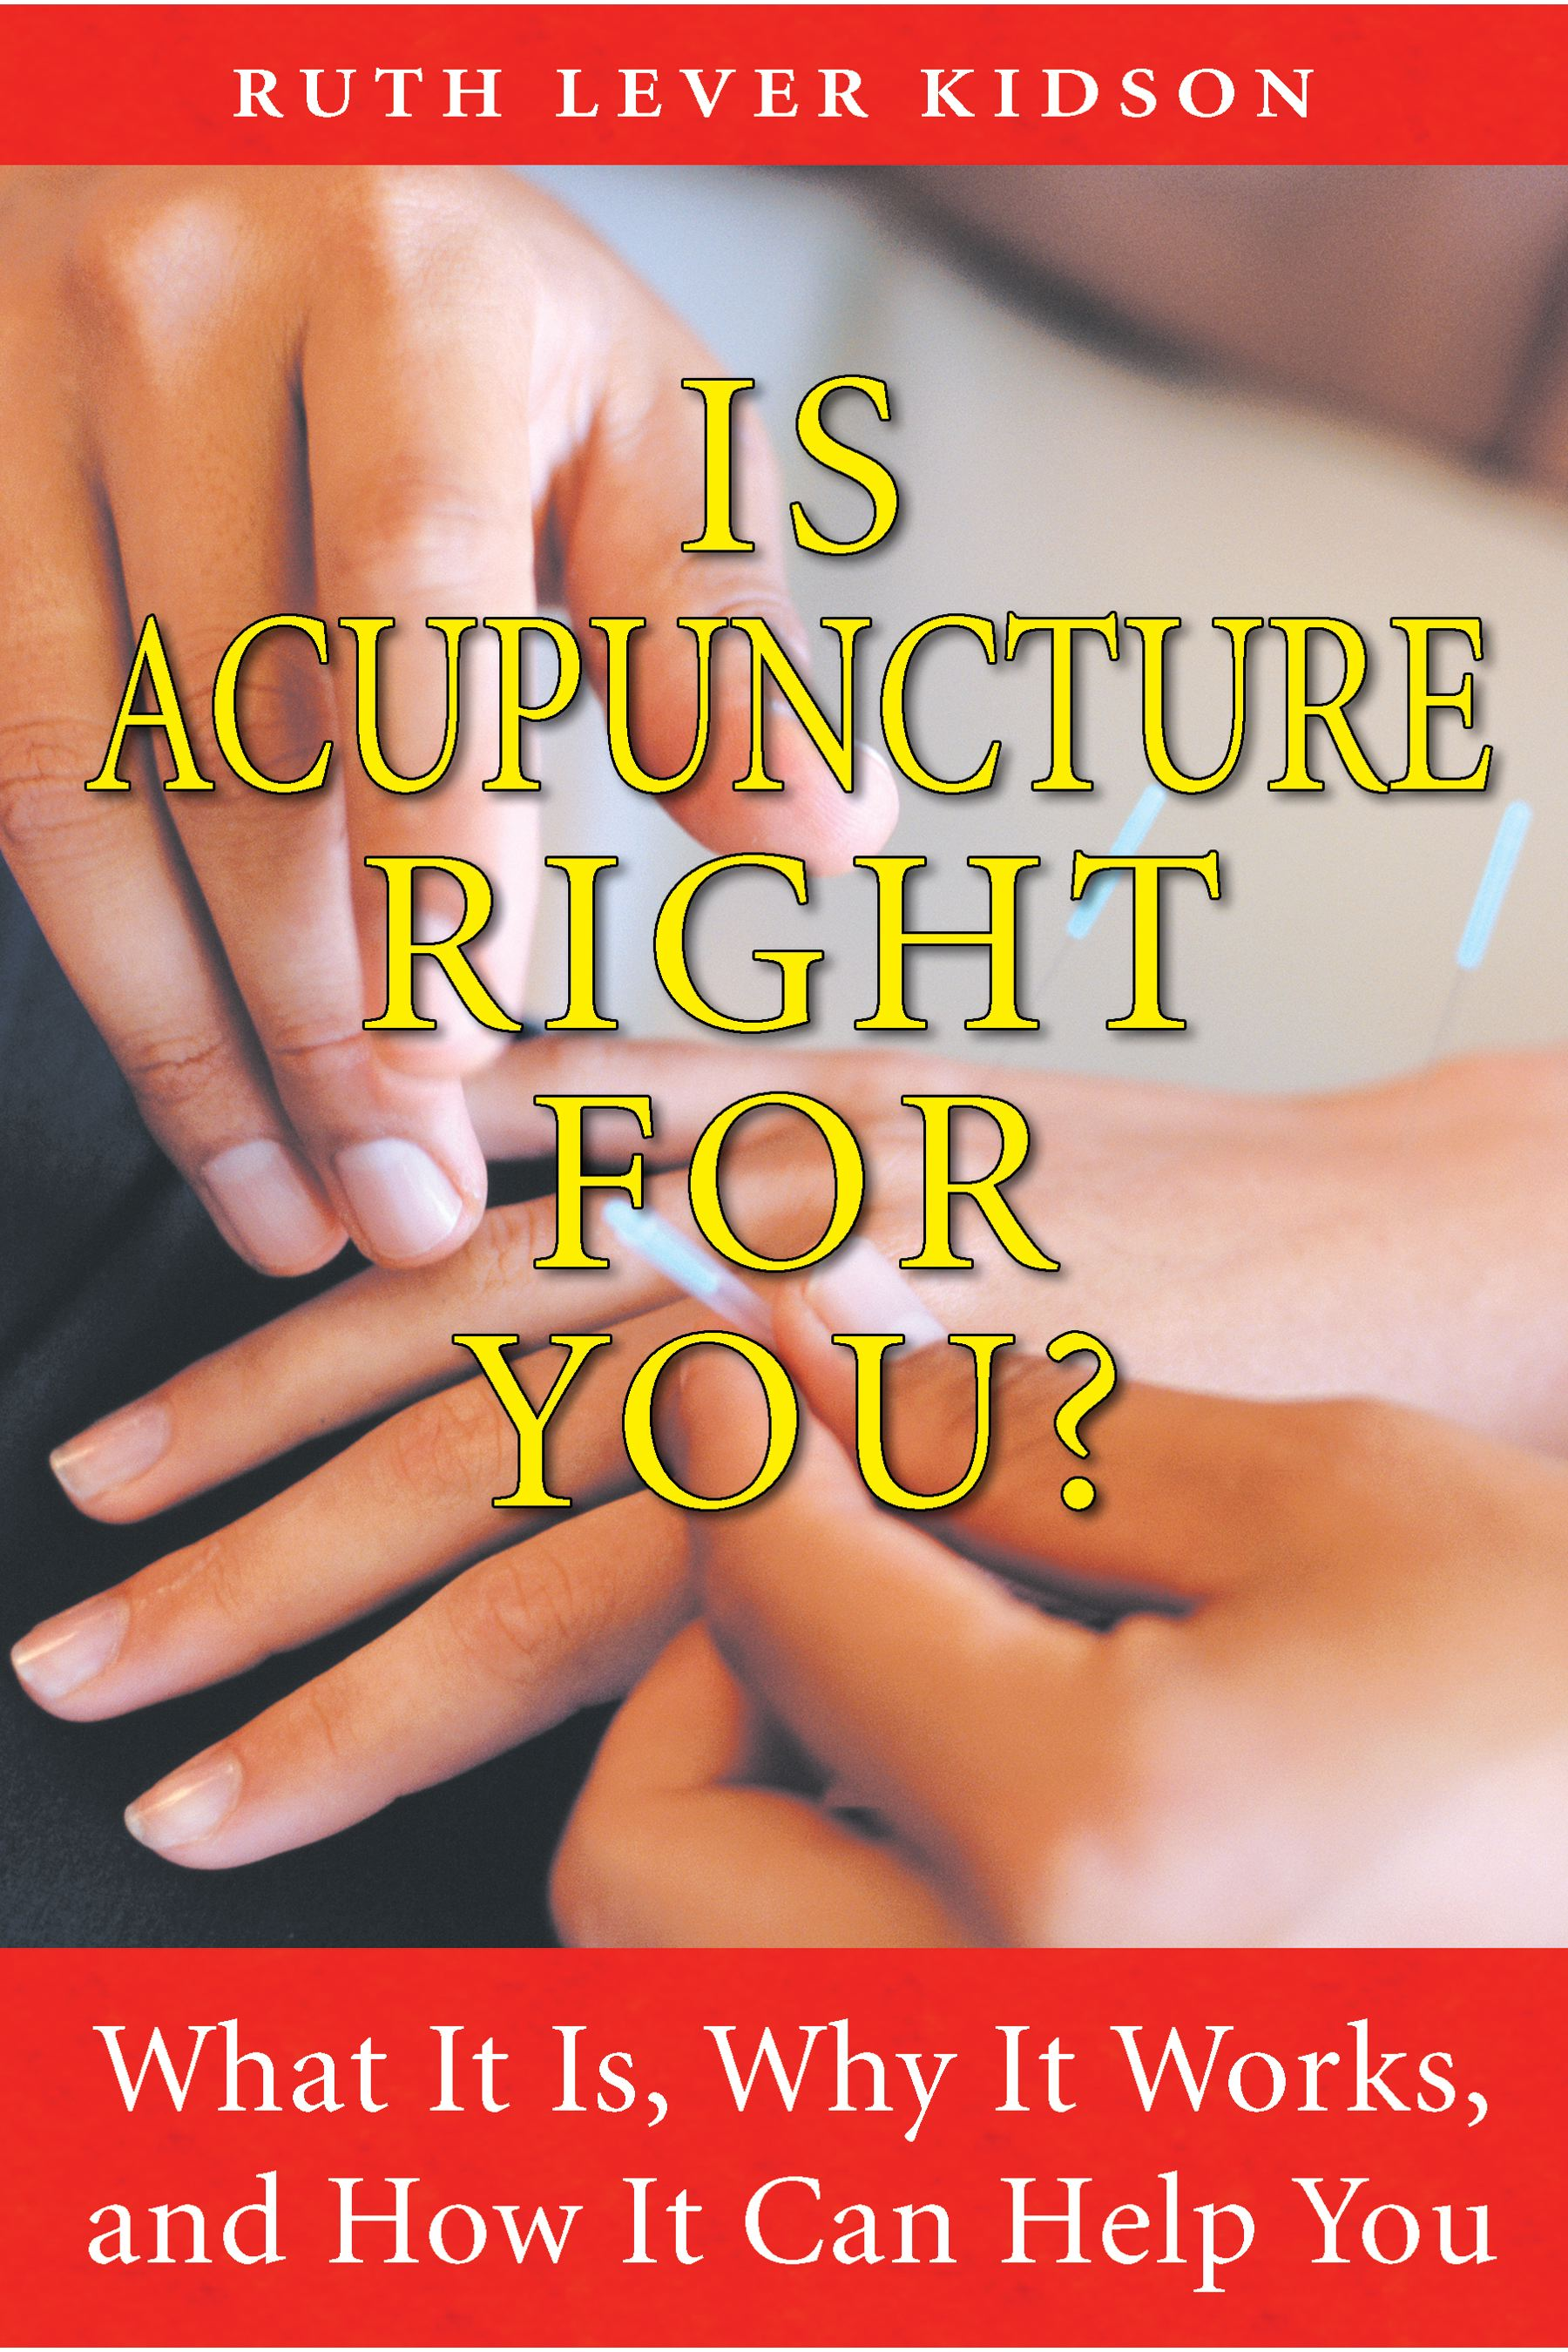 Is-acupuncture-right-for-you-9781594772672_hr